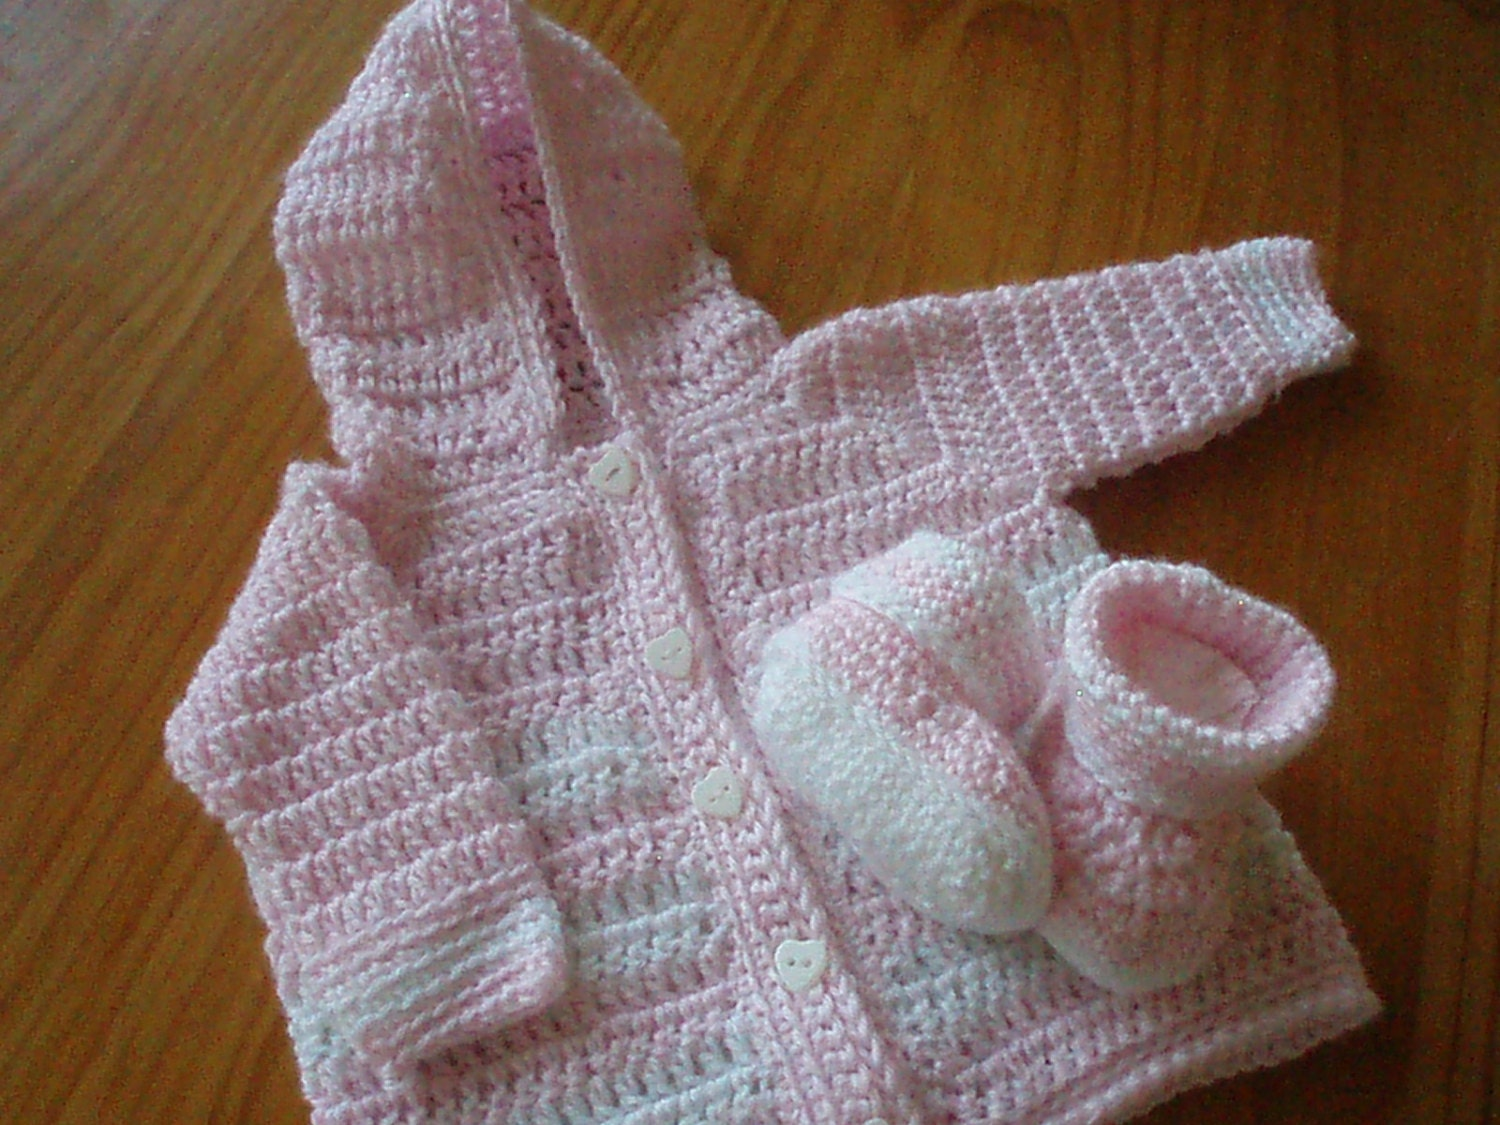 Crochet Baby Hooded Sweater Pattern Free : Crochet Pattern for Baby Hooded Sweater and Booties Hooded